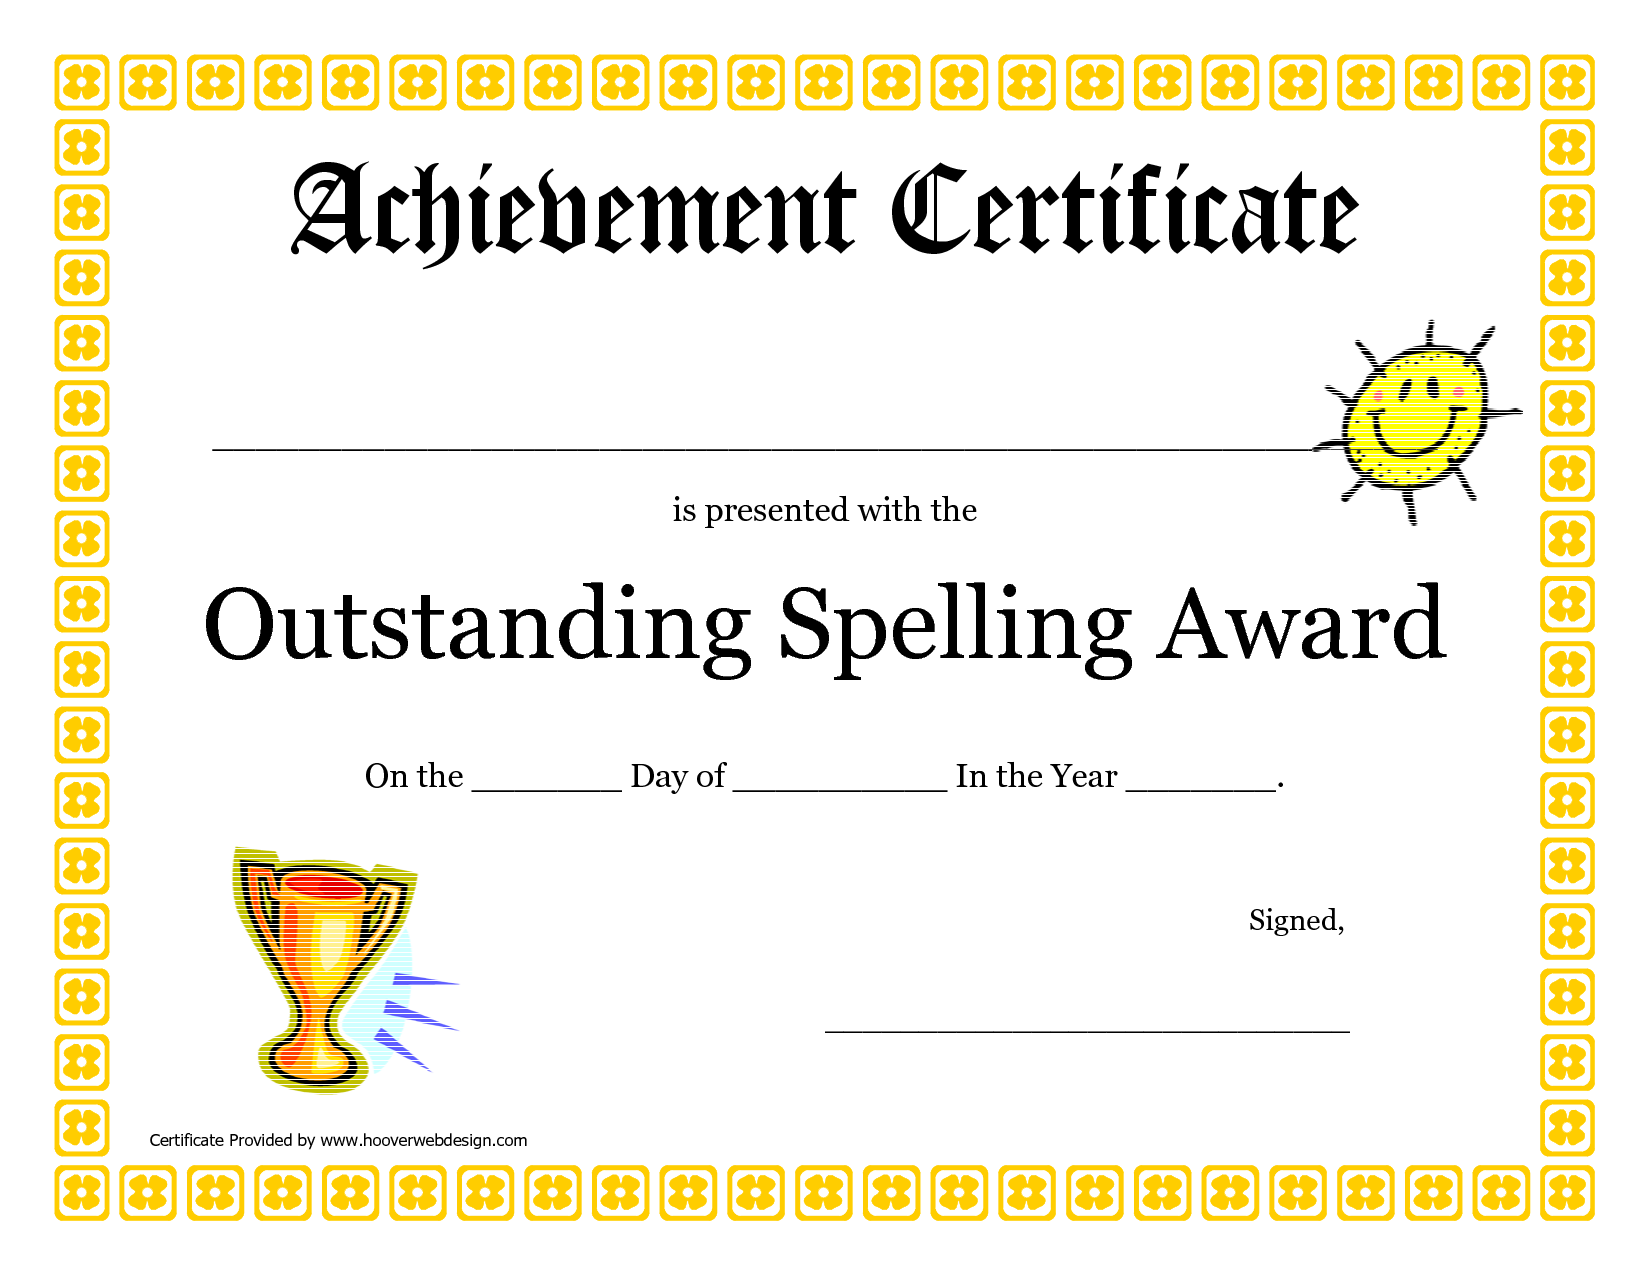 Outstanding spelling award printable certificate pdf for Spelling bee invitation template